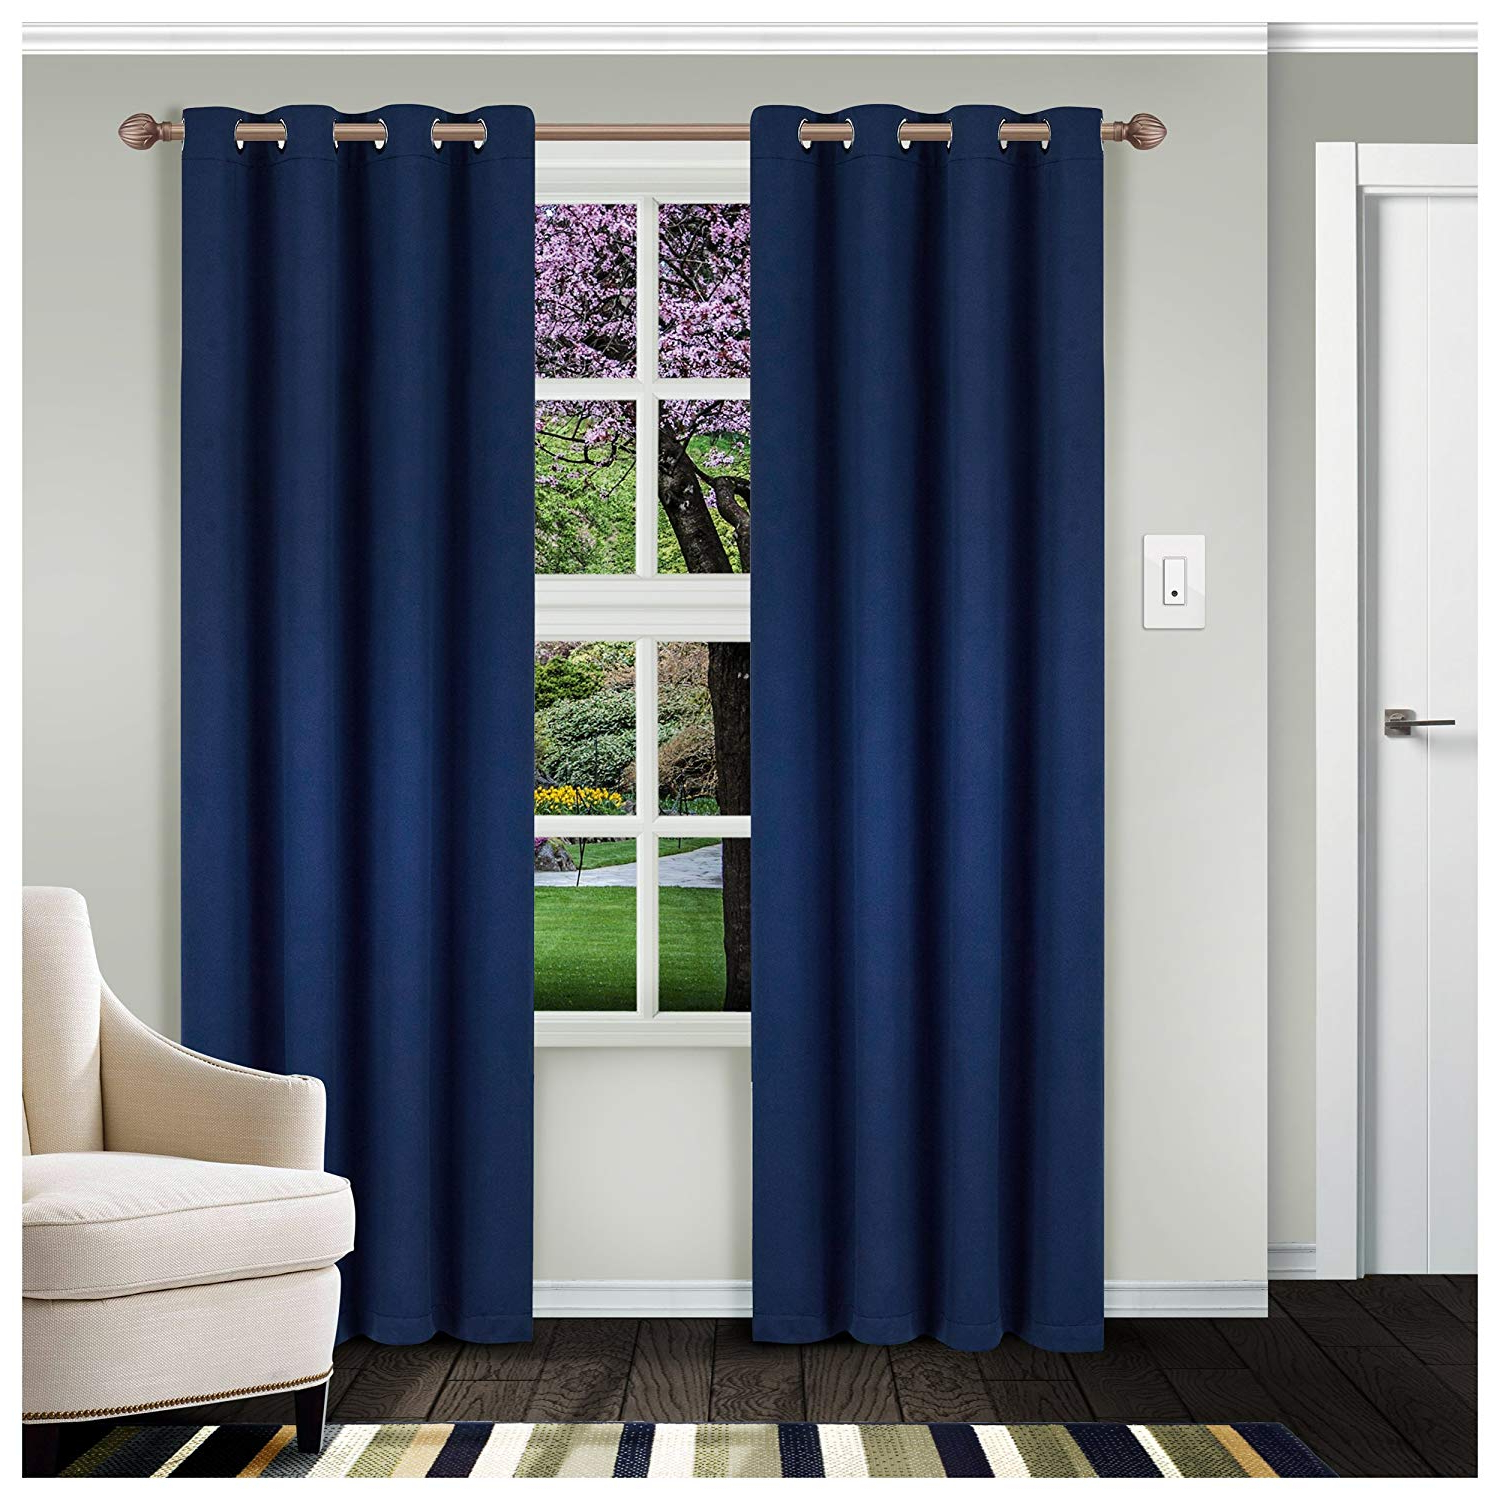 Superior Solid Blackout Curtain Set Of 2, Thermal Insulated Panel Pair With  Grommet Top Header, Elegant Solid Room Darkening Drapes, Available In 4 Throughout Well Known Thermal Insulated Blackout Curtain Panel Pairs (View 13 of 20)